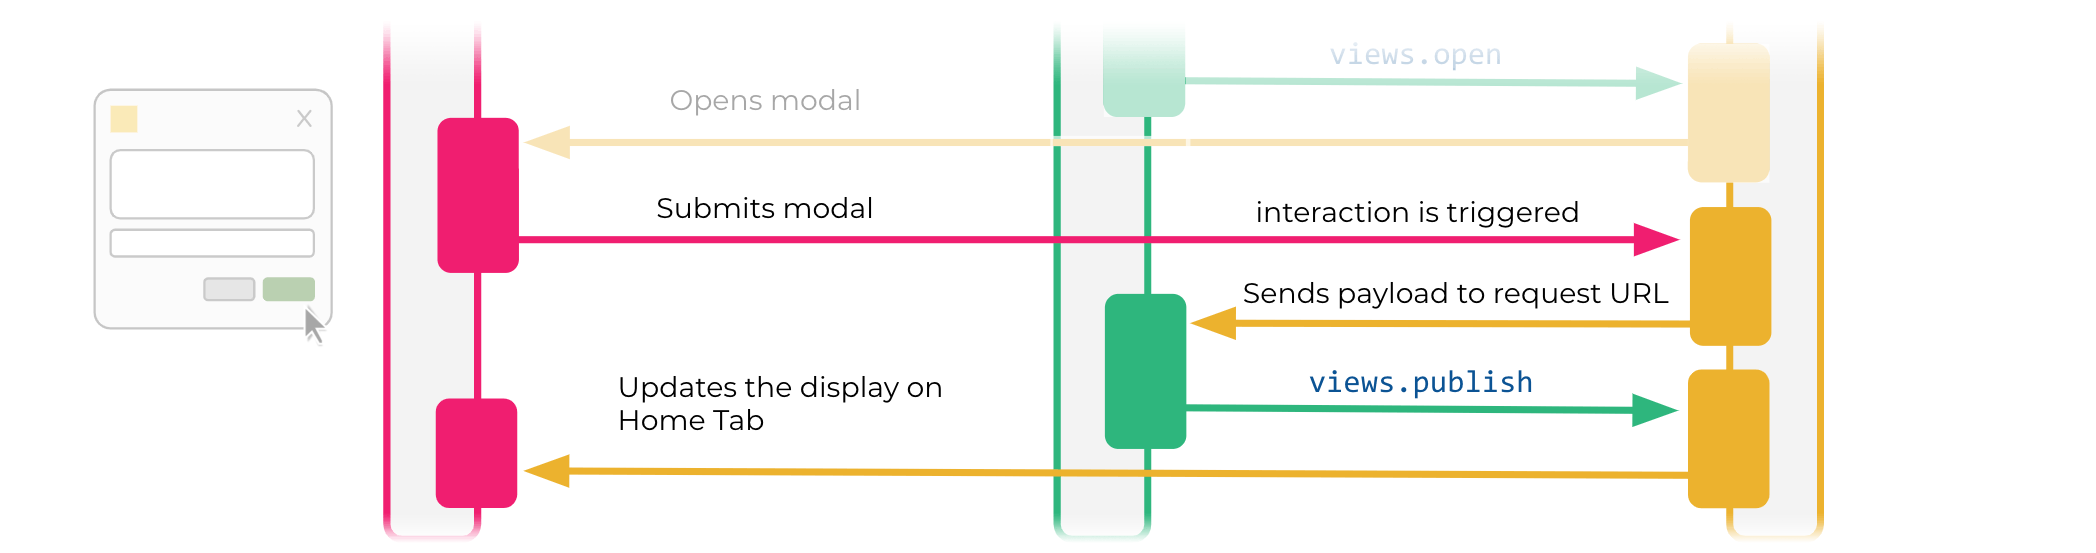 app_diagram_modal_submit.png